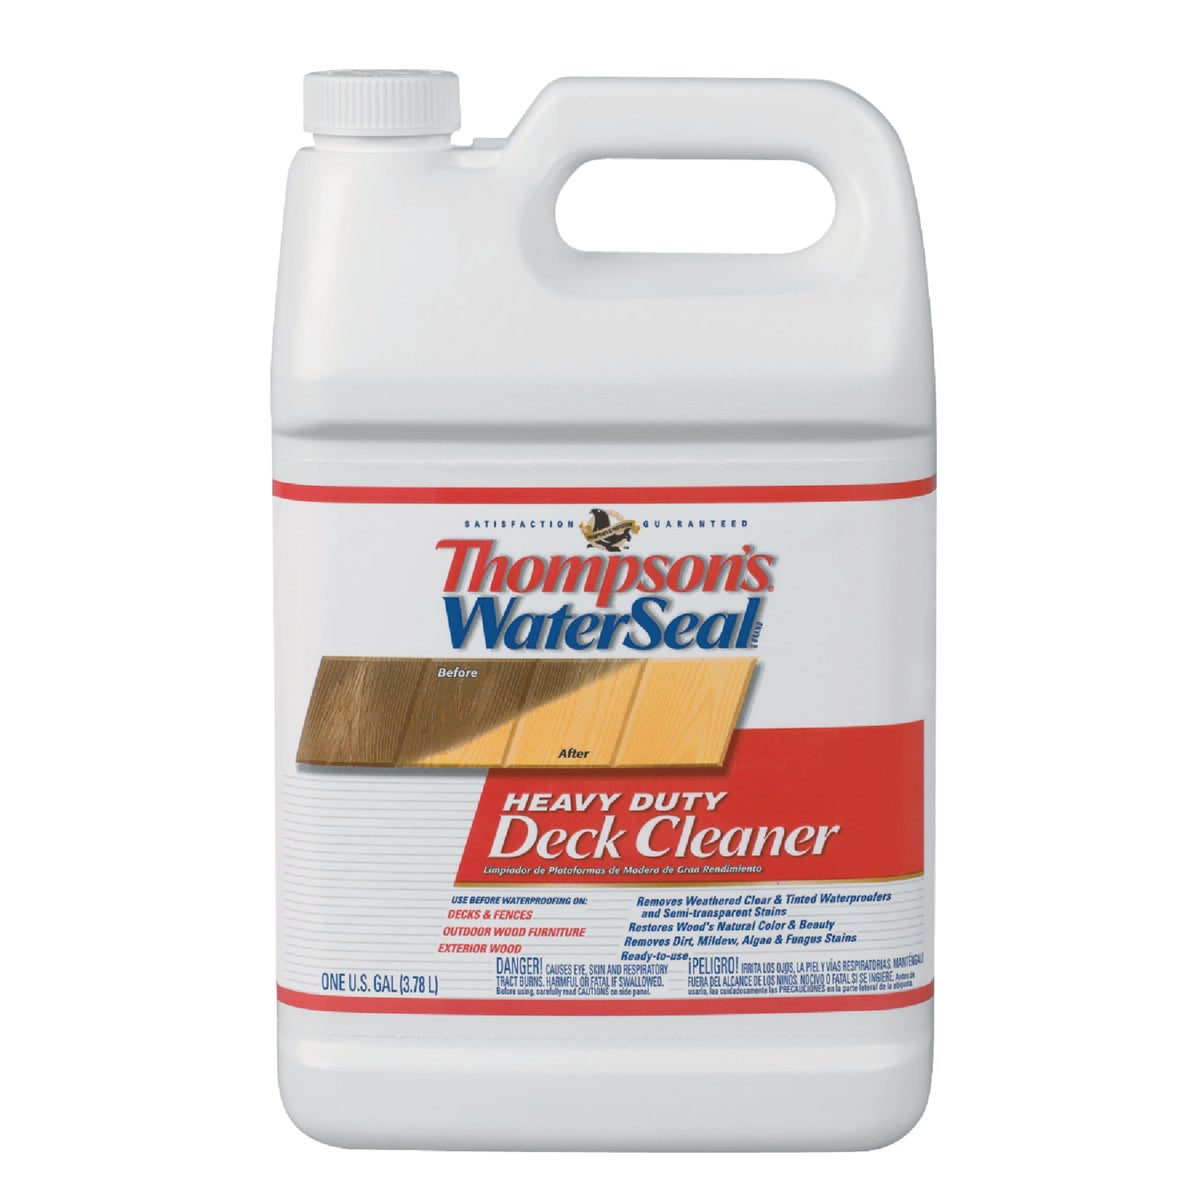 Thompsons HEAVY DUTY DECK CLEANER 87701